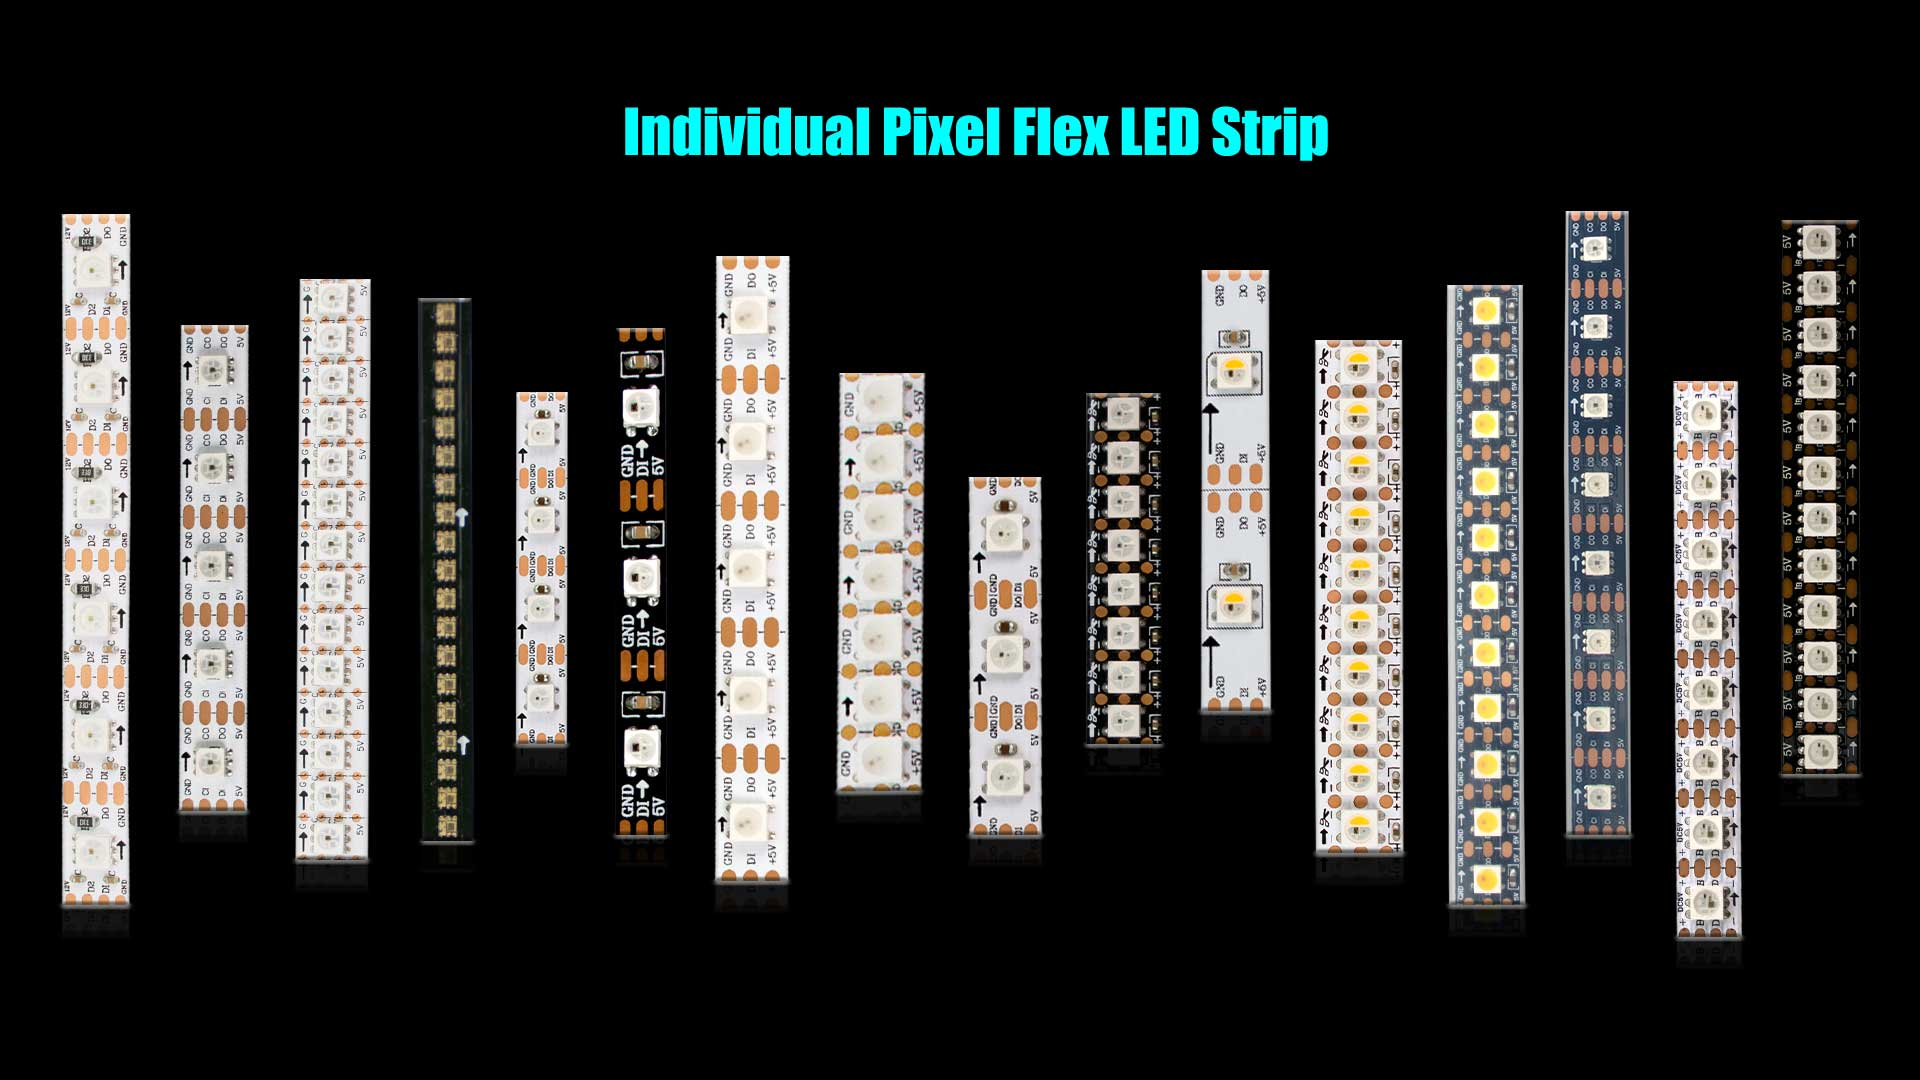 Individual Pixel Flex LED Strip